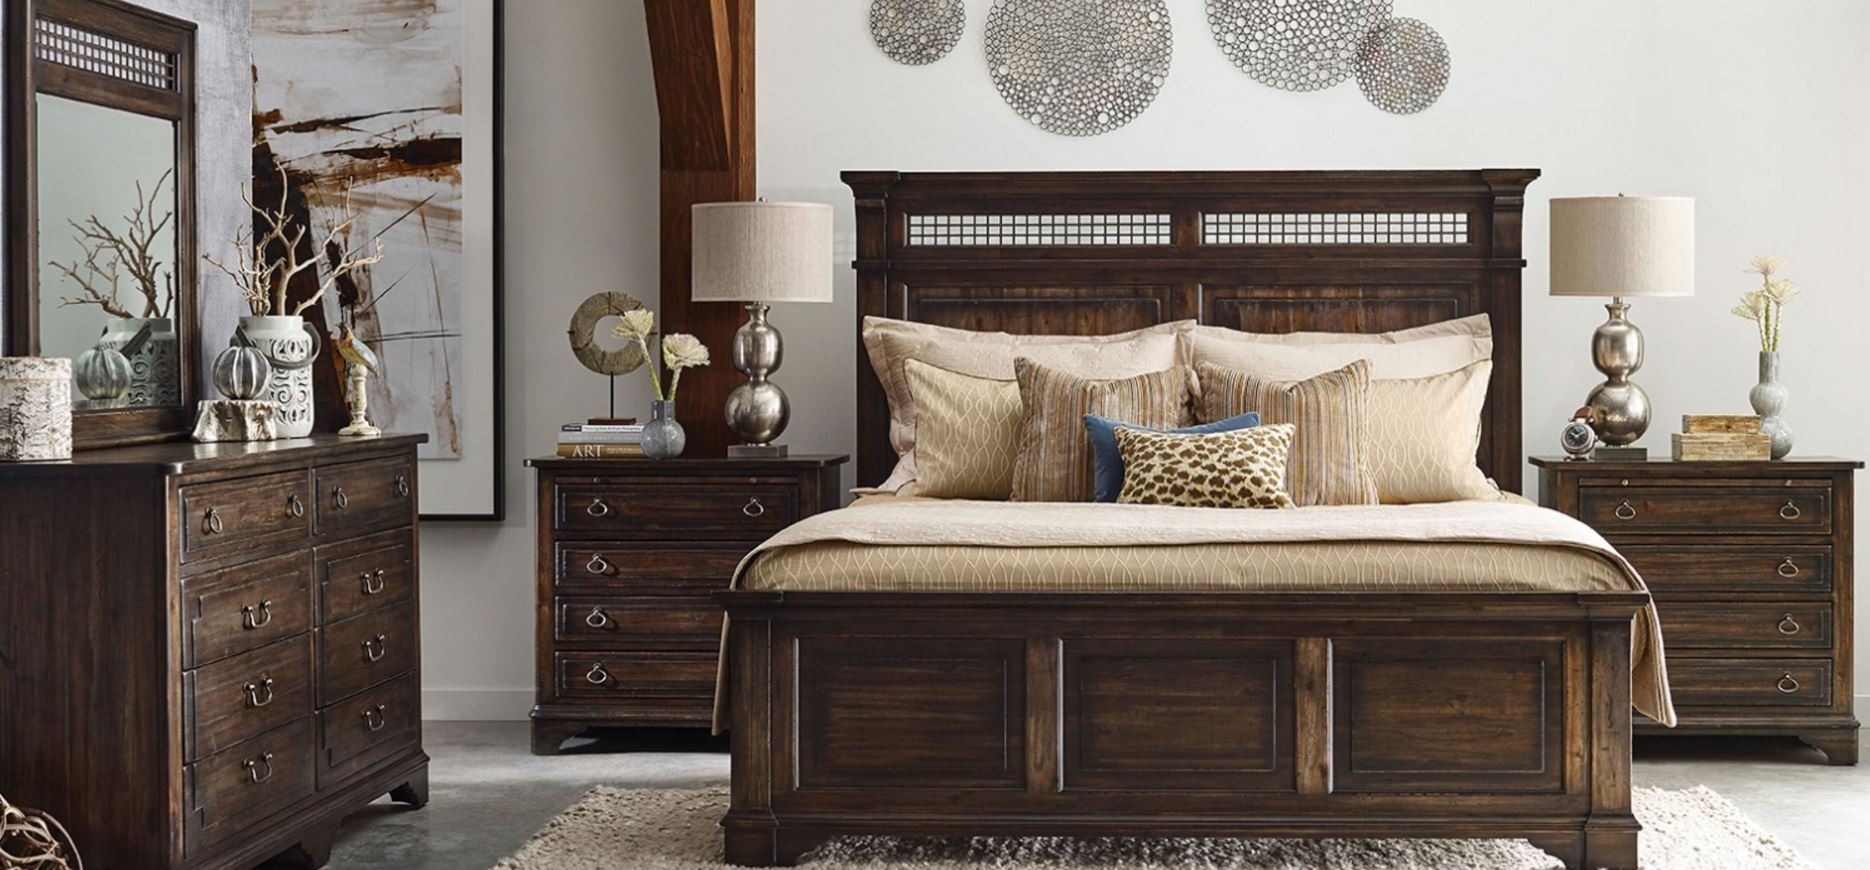 Kincaid Furniture Wildfire Bedroom Collection Sodafine. Kincaid Furniture  Beautifully Crafted Solid Wood Designs   Soda Fine